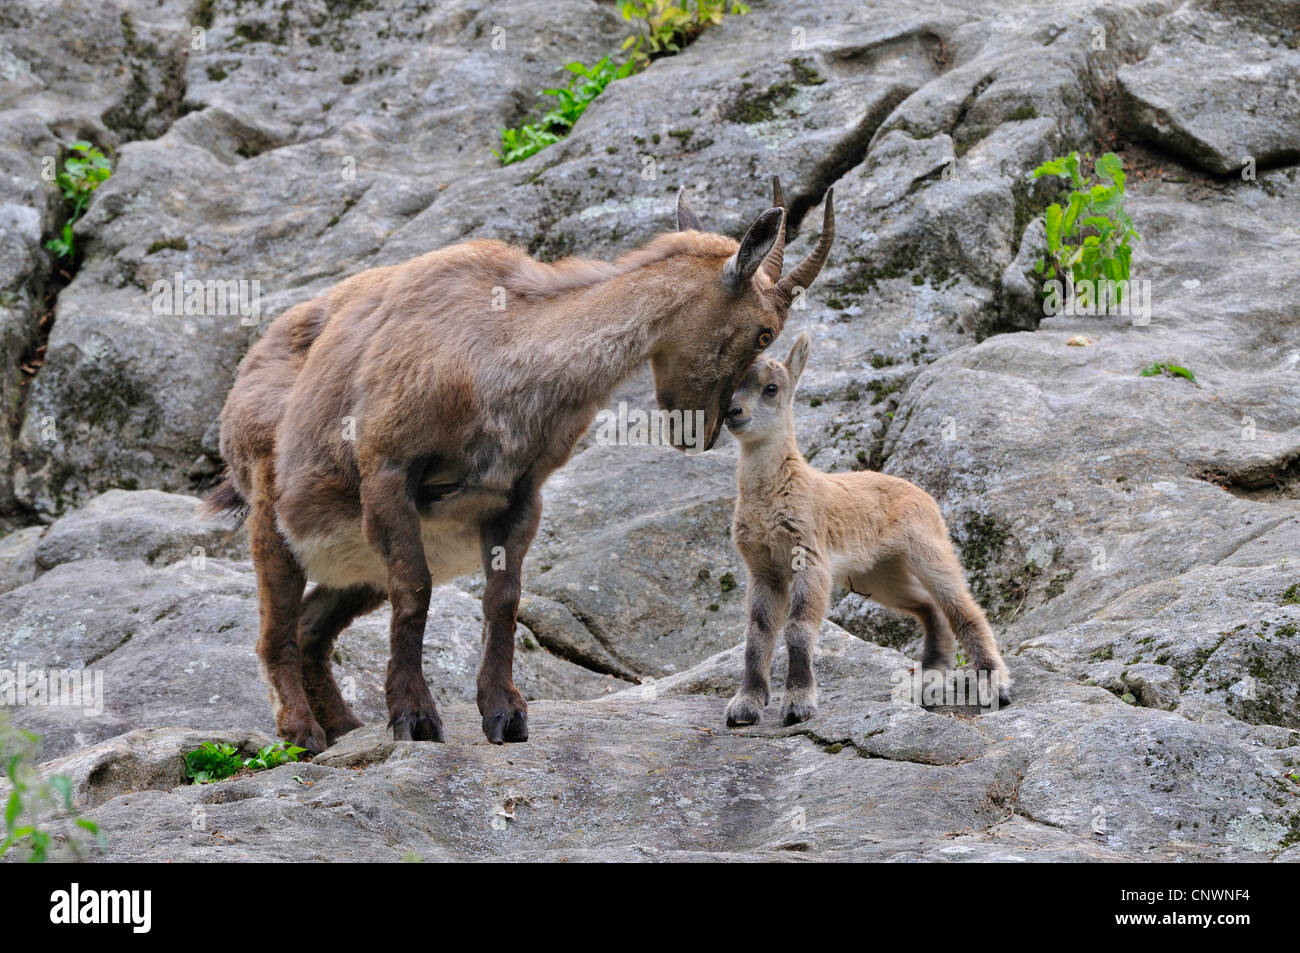 alpine ibex (Capra ibex), mother and juvenile tenderly rubbing their heads against each other, Alps - Stock Image